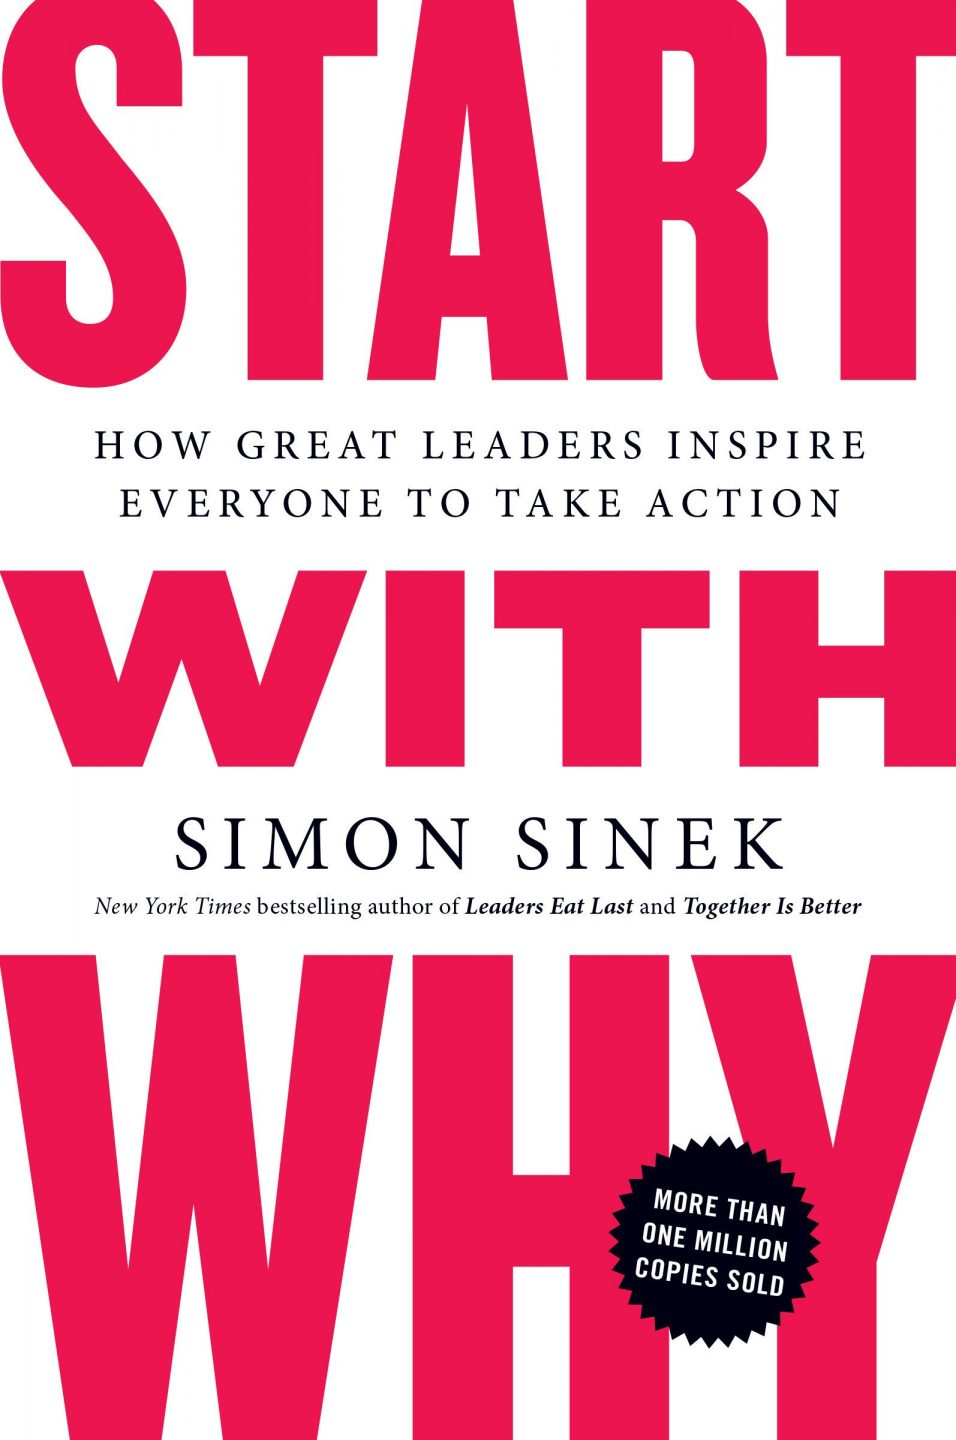 Want a Life? Find a Reason: Start With Why by Simon Sinek